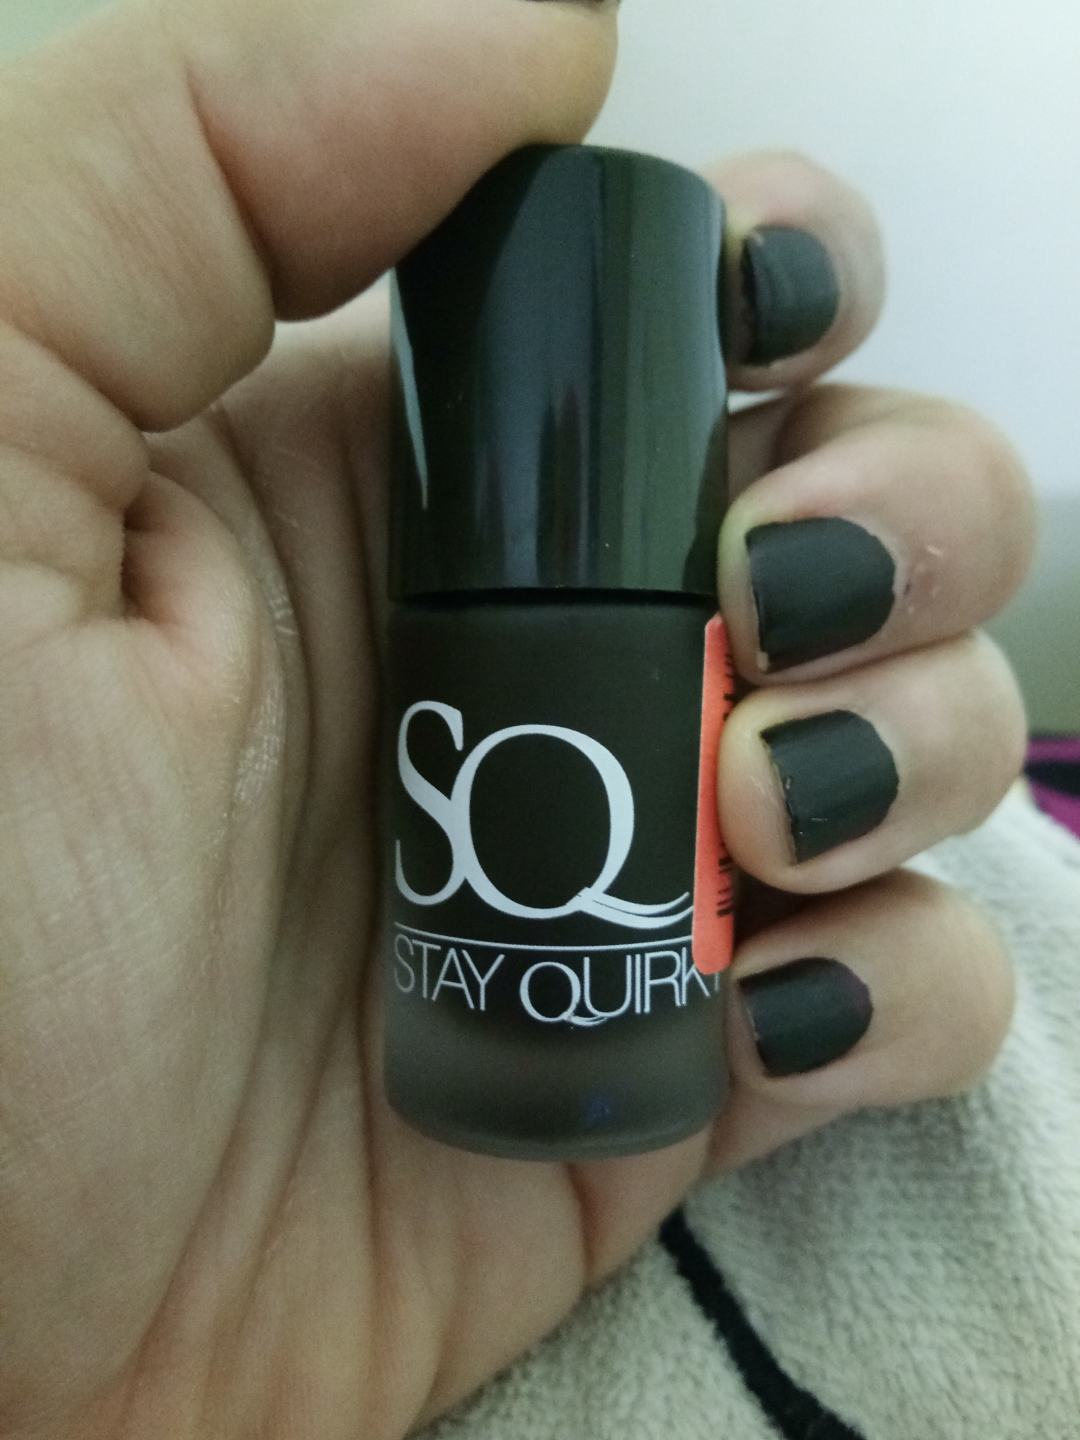 Stay Quirky Nail Polish Matte Finish Maroon Matte-beth 1046: Review ...